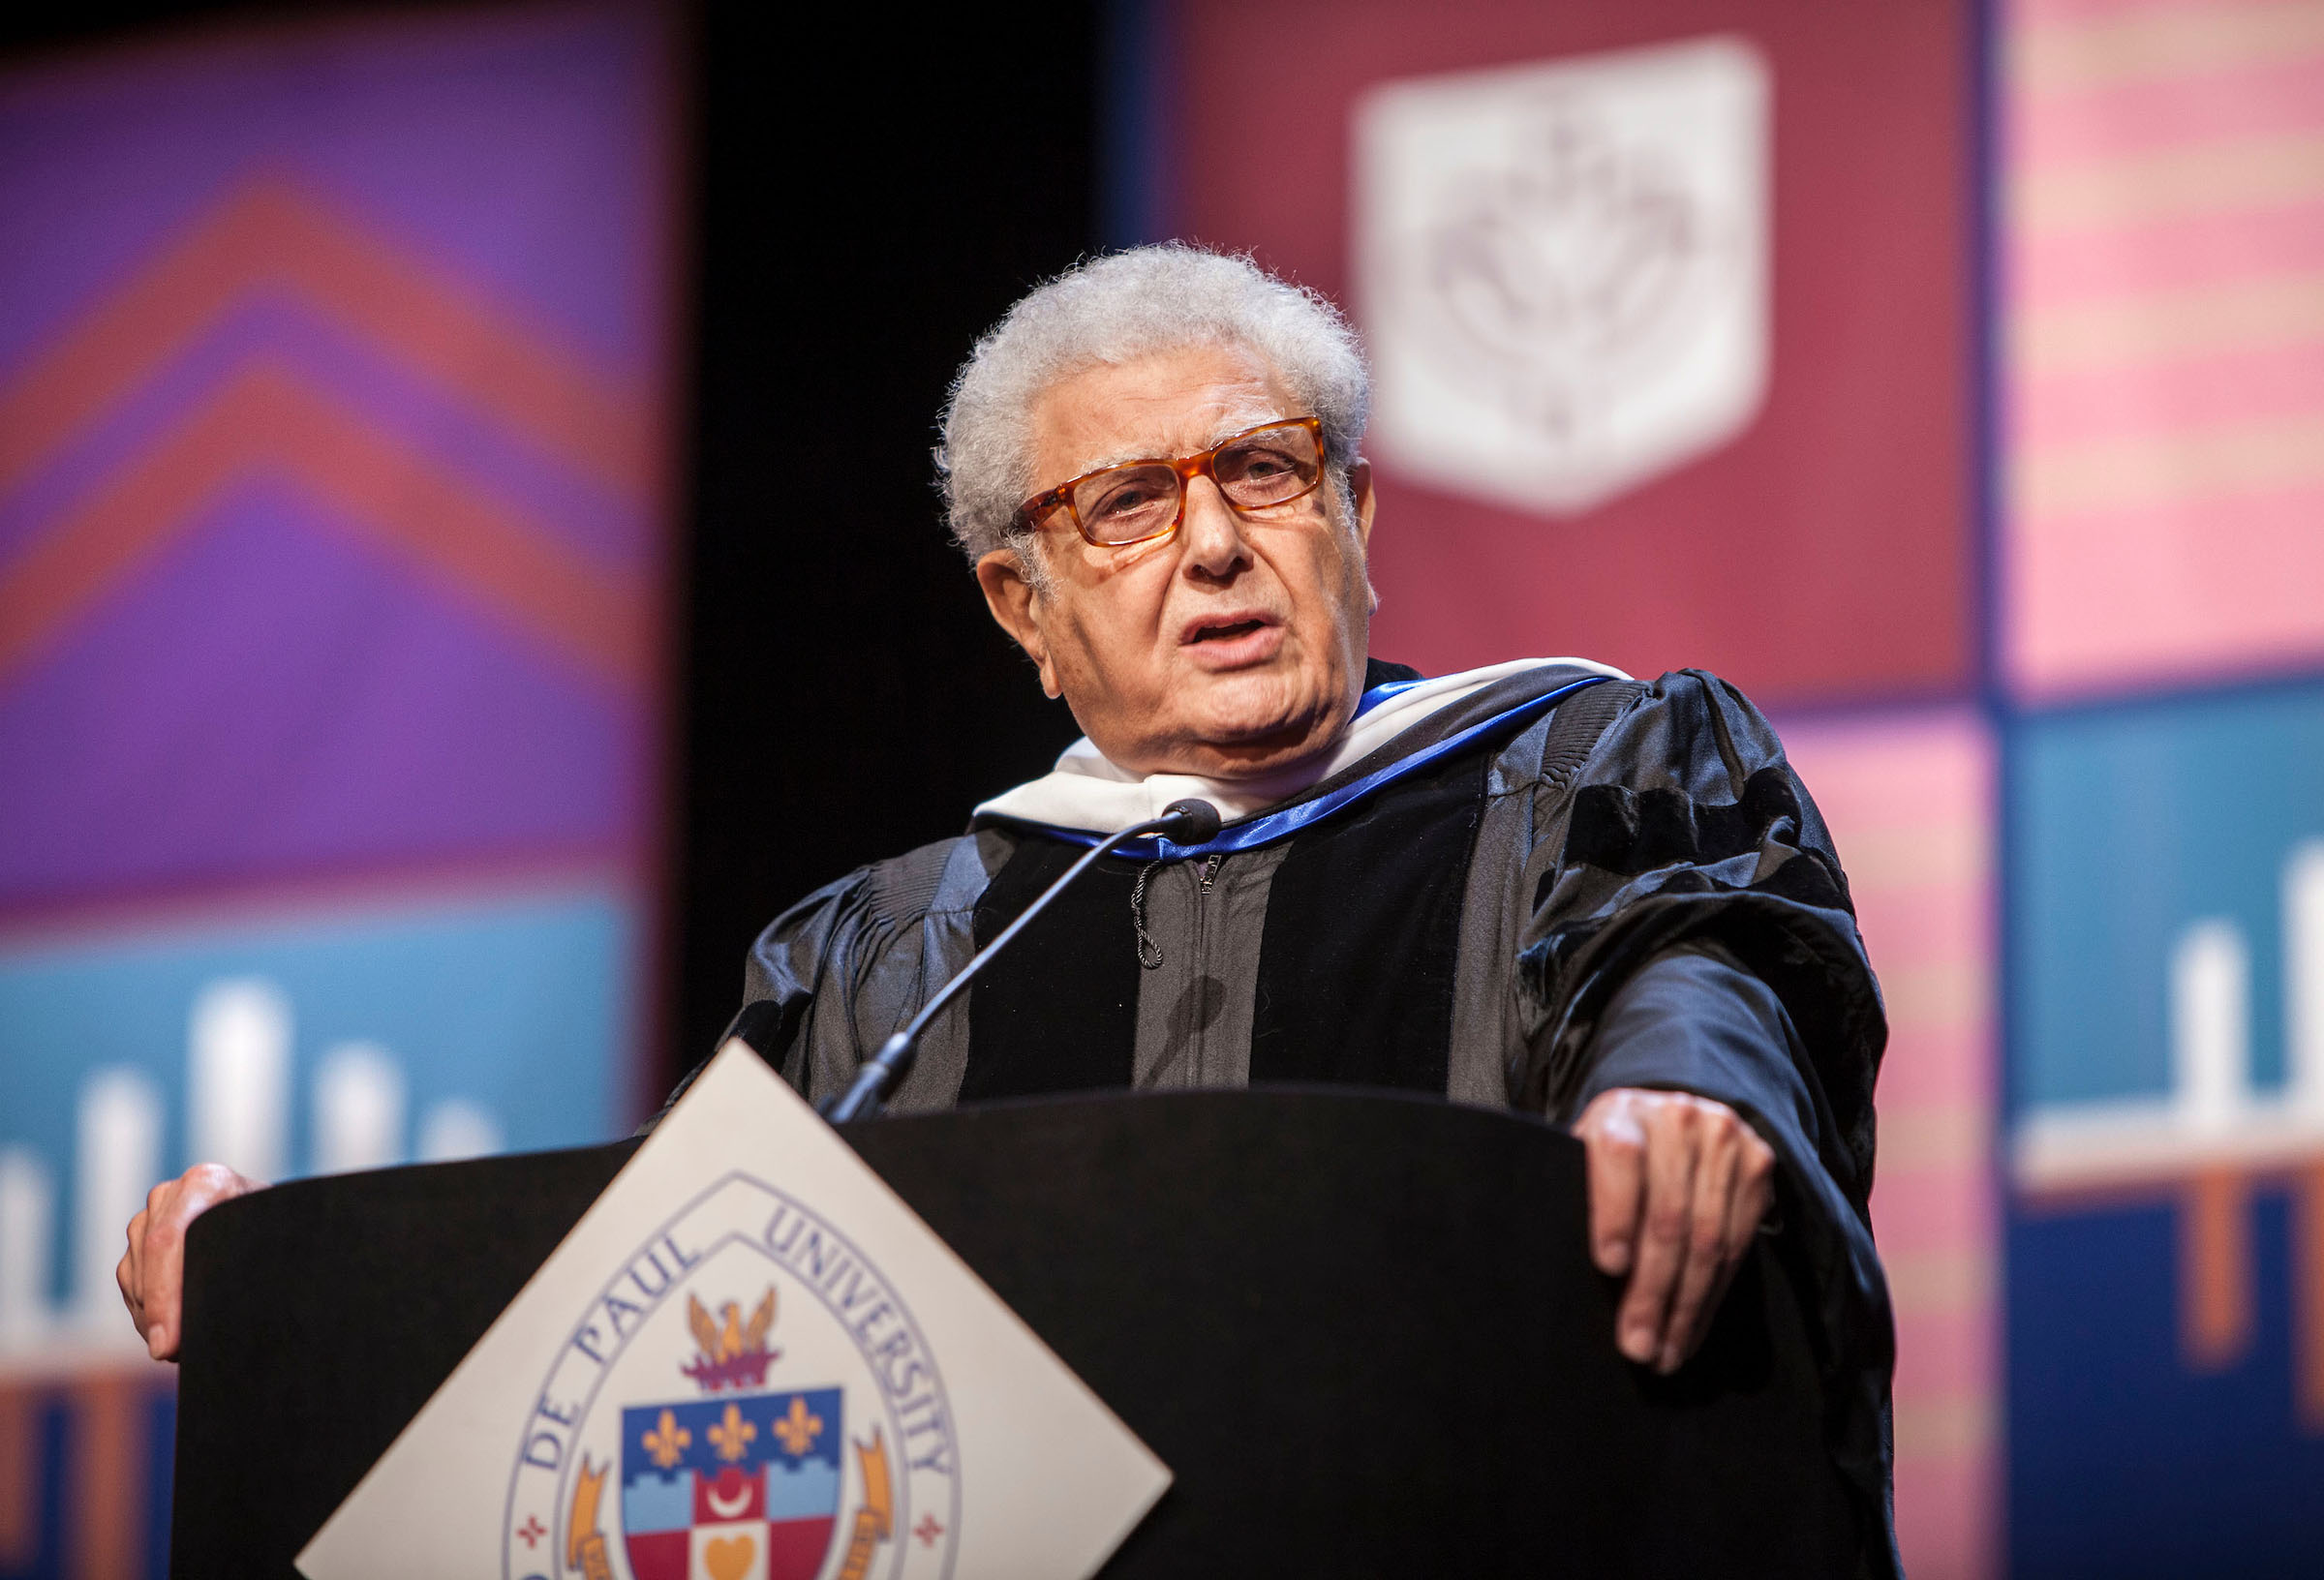 DePaul University Emeritus Professor of Law M. Cherif Bassiouni